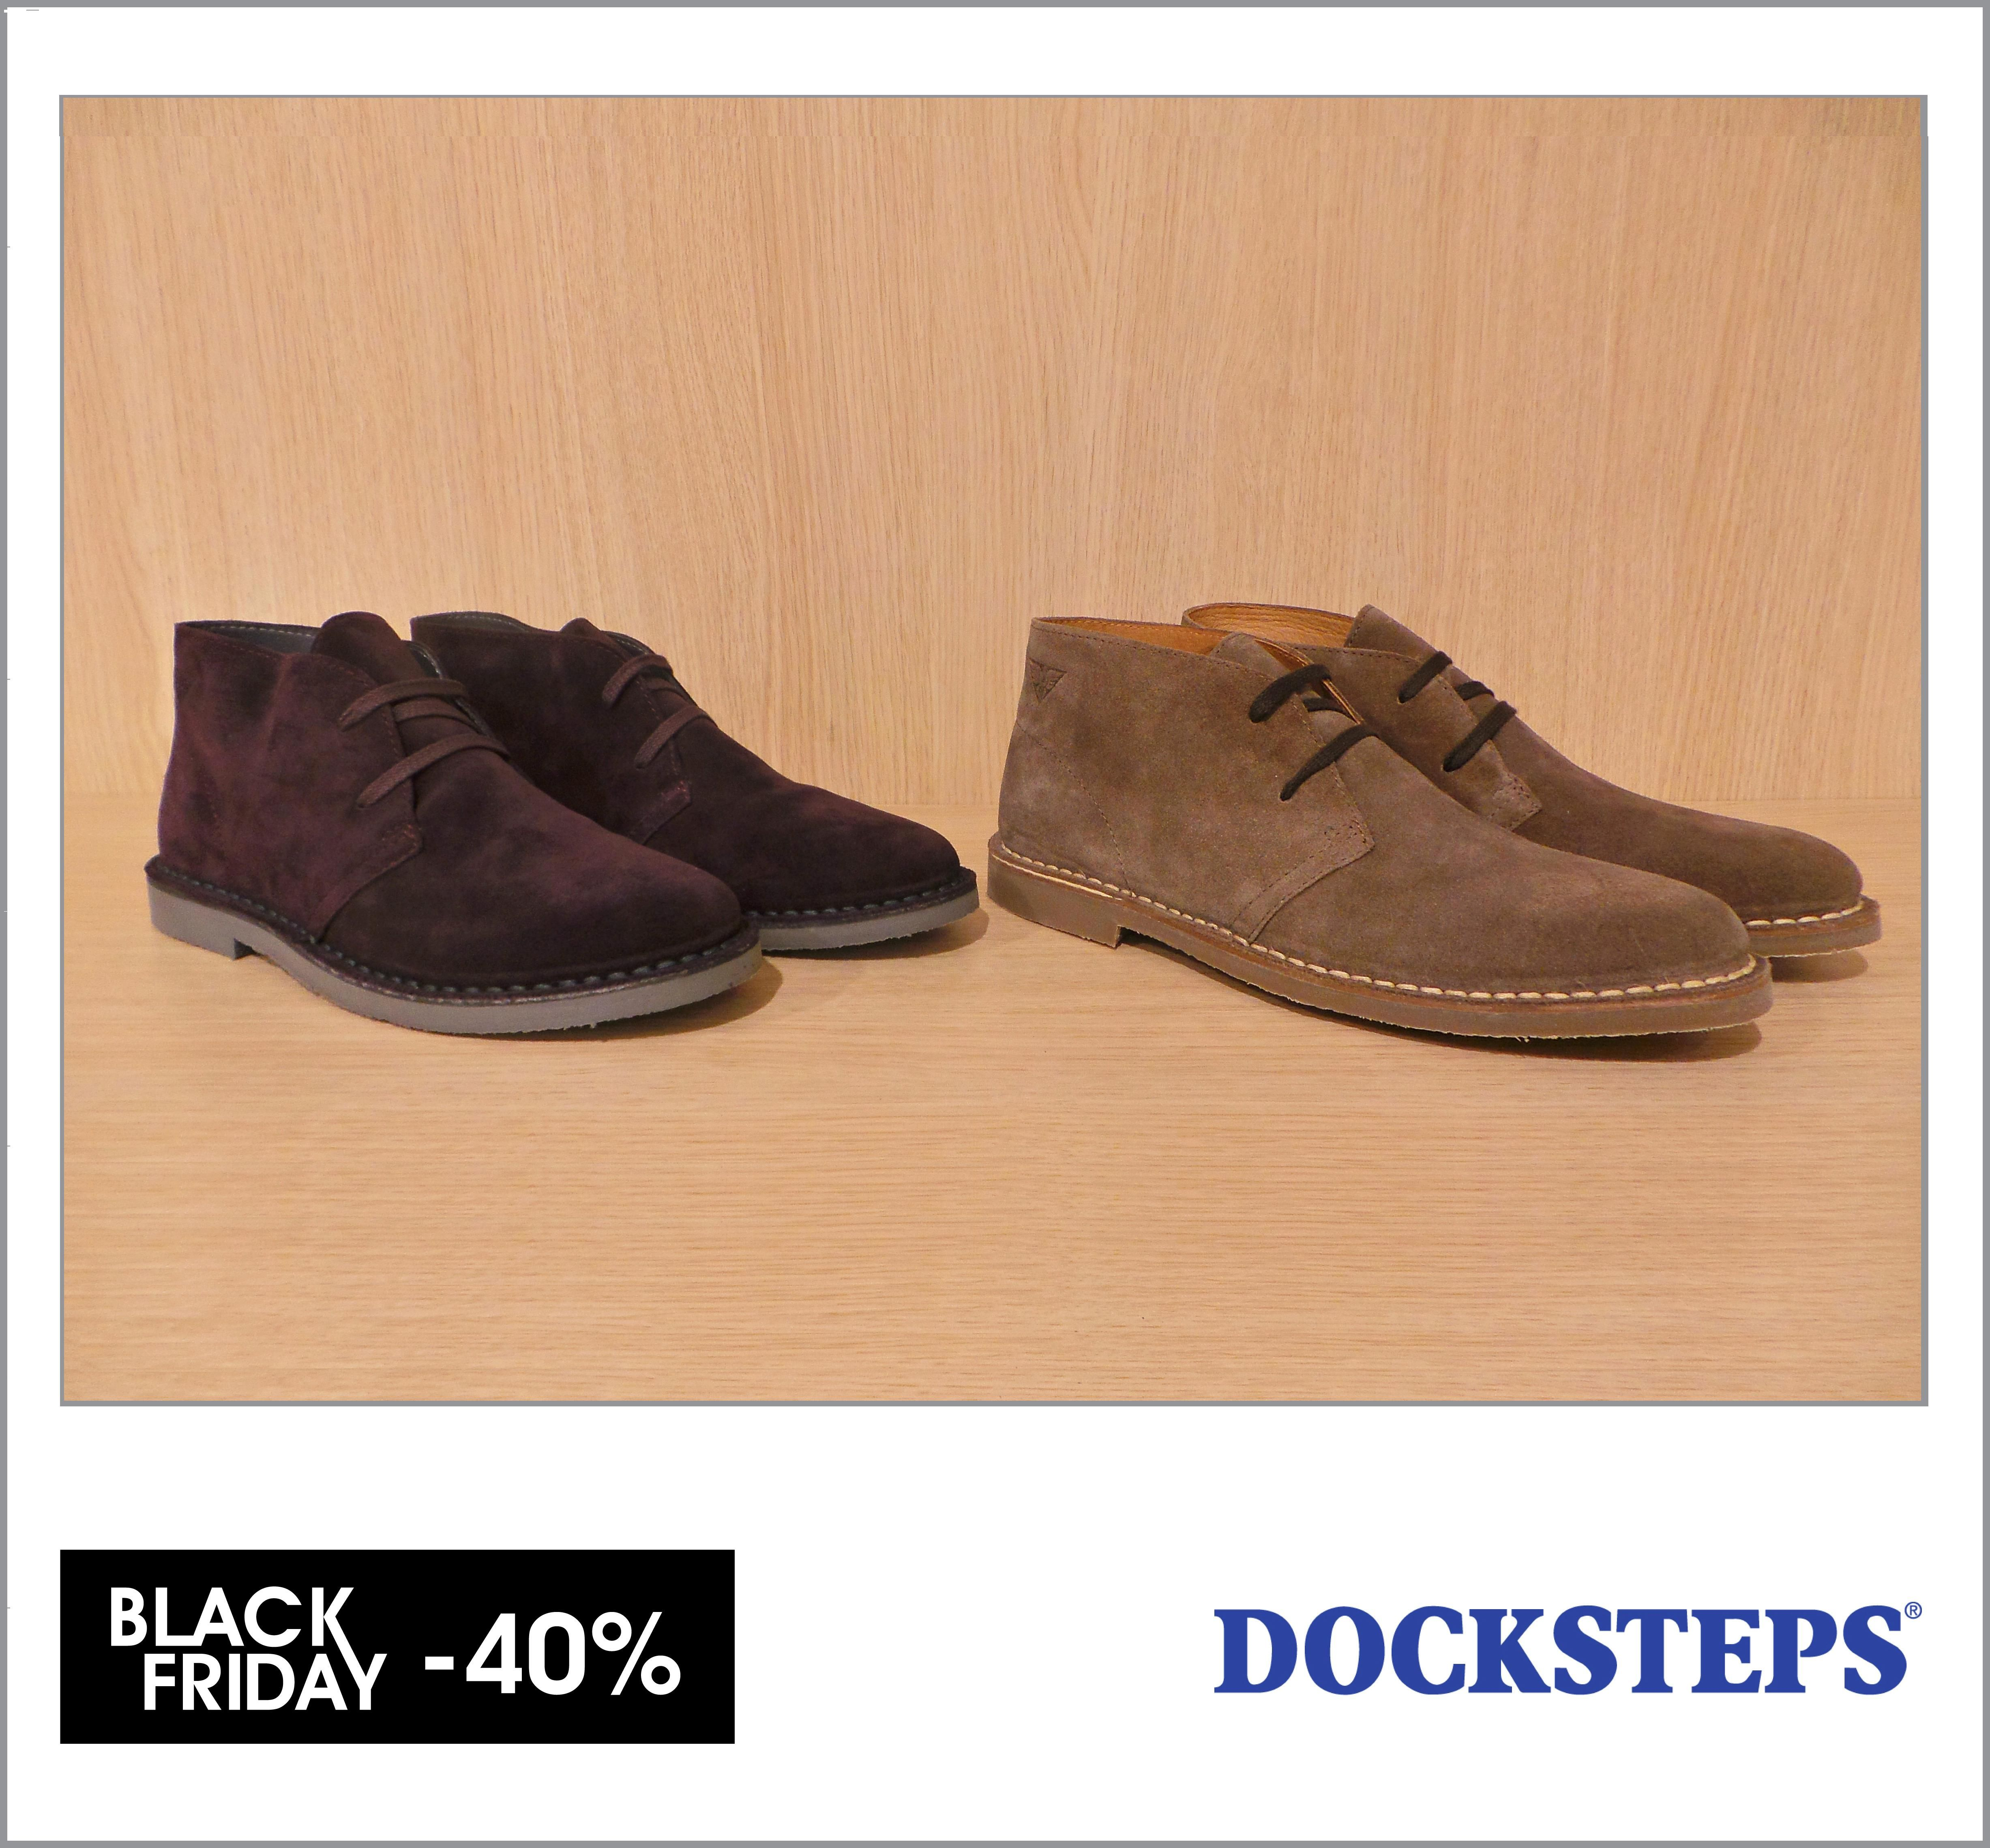 #BLACK #FRIDAY! 28.11.2014 // 5pm - 8pm# #Male and #Female #desert #boot / #Polacchino uomo e donna - #Docksteps #Original price: 129.00€ #Outlet price: 79.00€ #BlackFriday price: 47.40€ #Available at Docksteps - store number 10. Disponibili presso Docksteps - civico 10 http://www.palmanovaoutlet.it/it/outlet/negozi/docksteps-factory-store